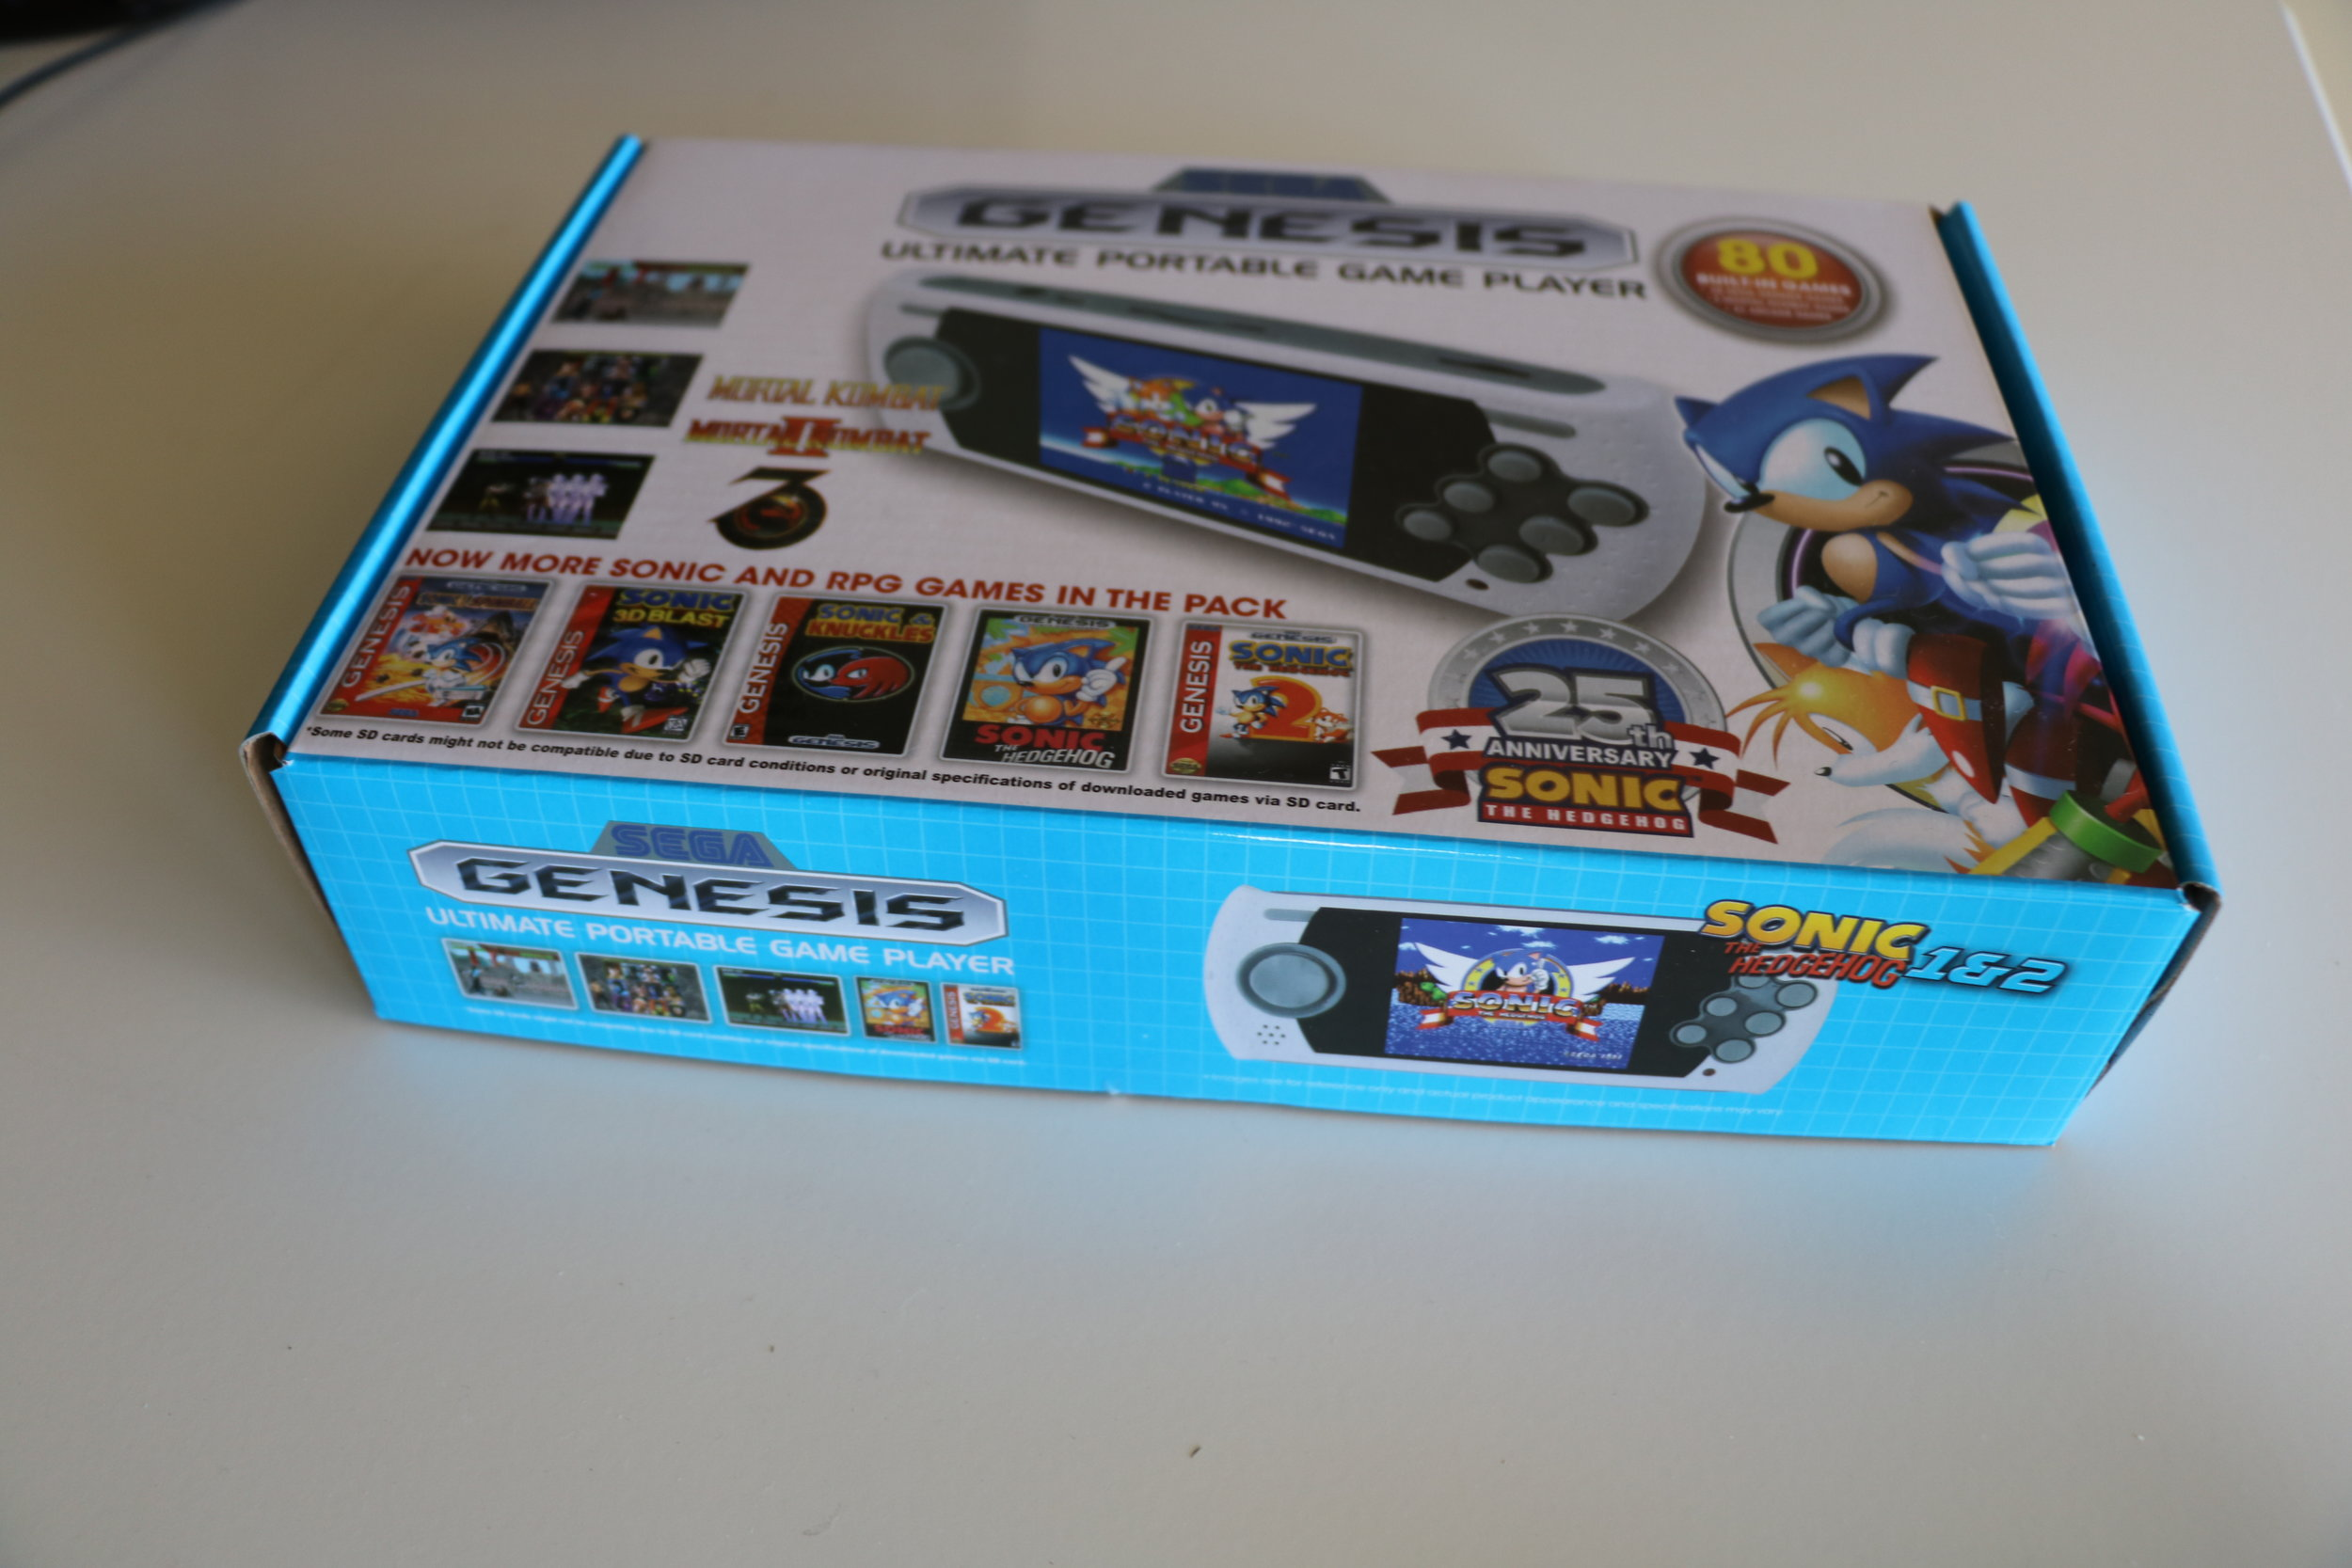 You can find the SEGA Genesis Ultimate Portable Game Player on Ebay for about $80 AUD.